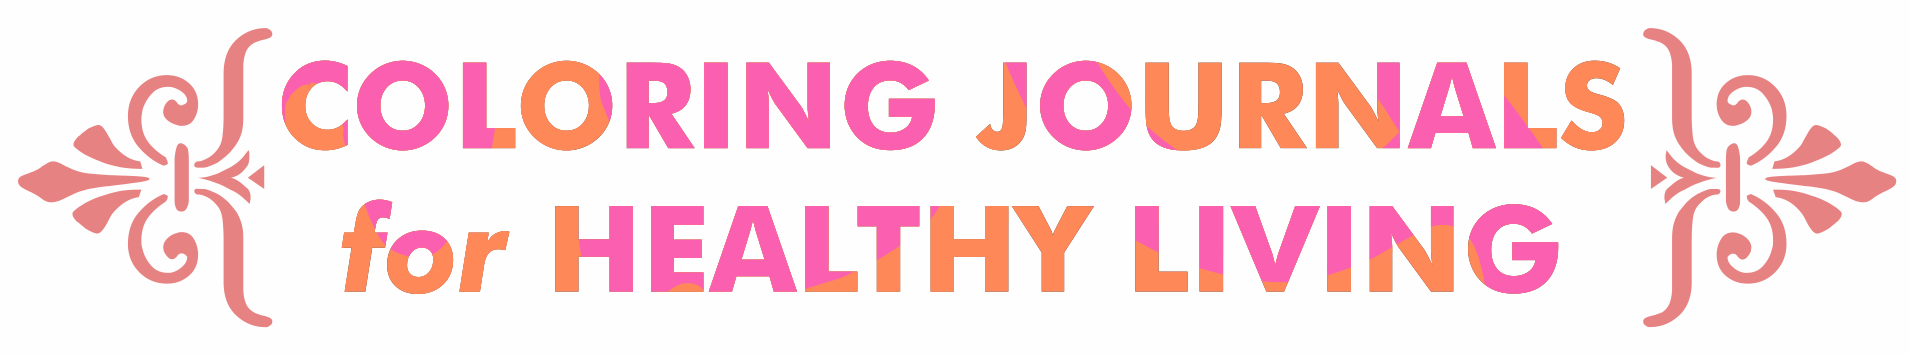 Coloring Journals for Healthy Living